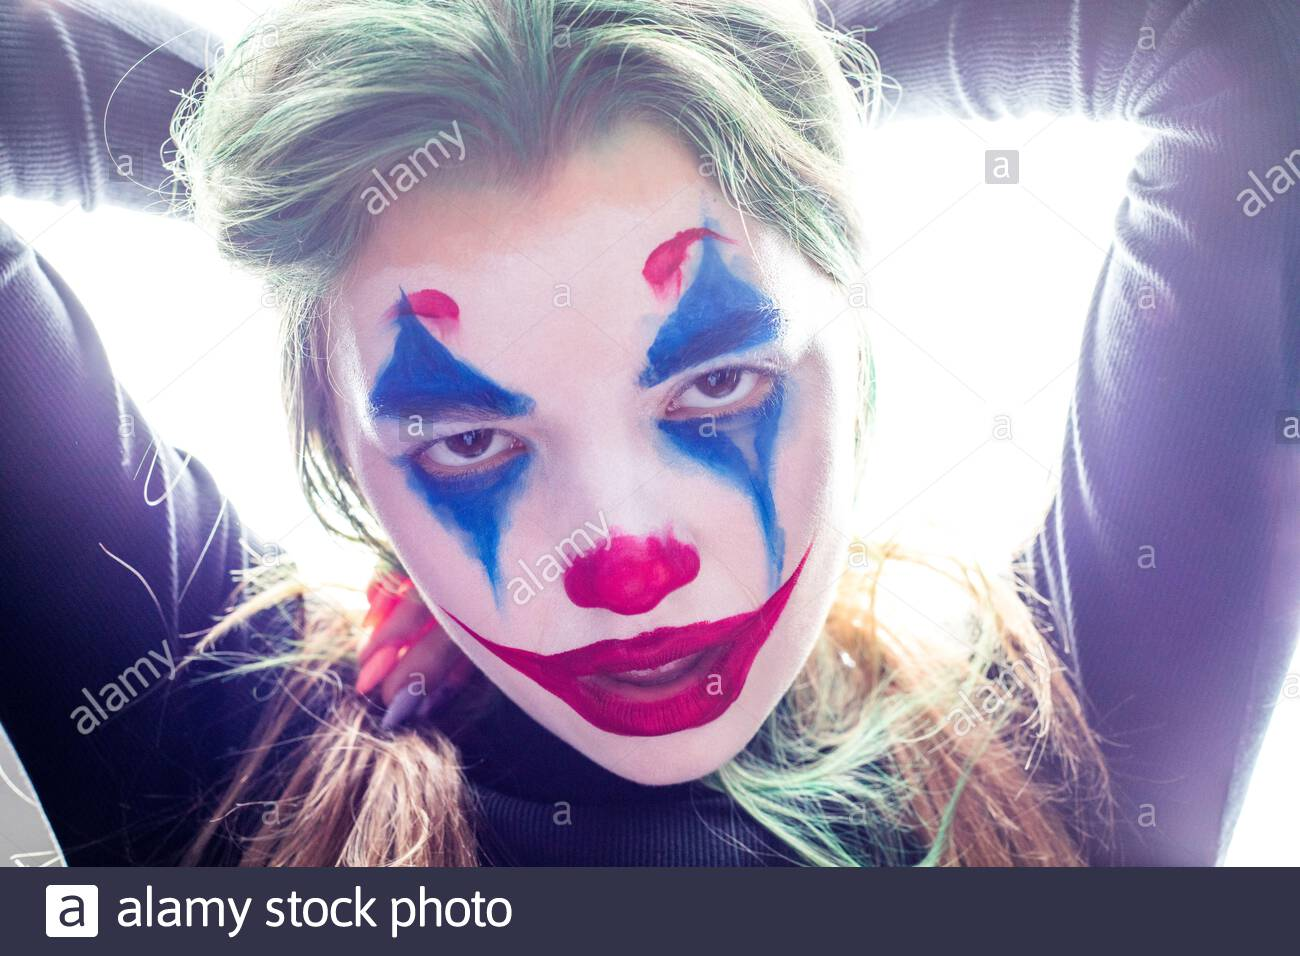 portrait-of-a-girl-with-clown-makeup-isolated-on-white-background-2ADTP96.jpg